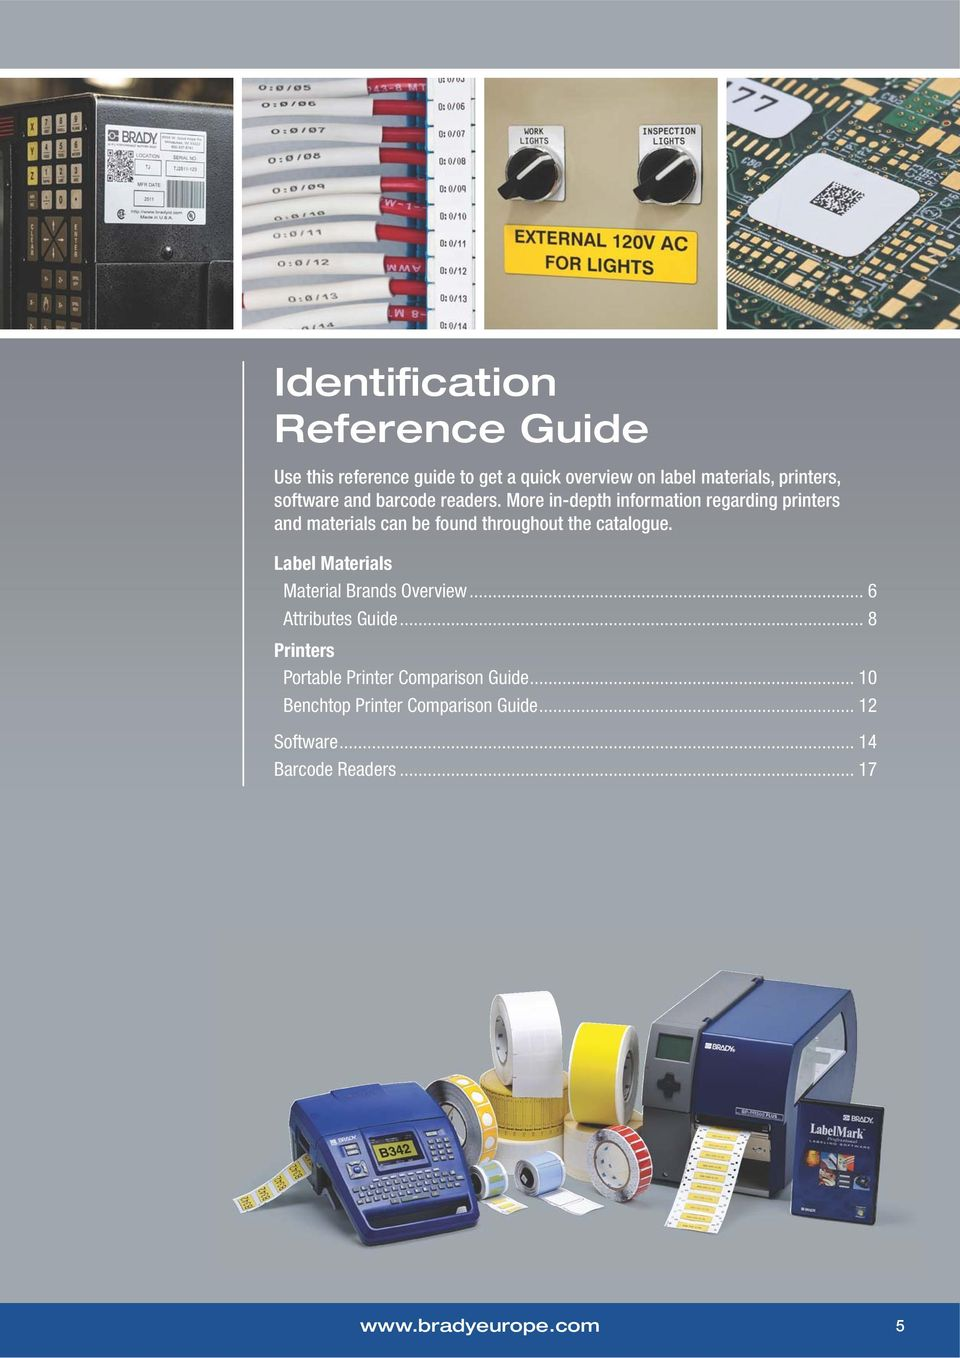 More in-depth information regarding printers and materials can be found throughout the catalogue.